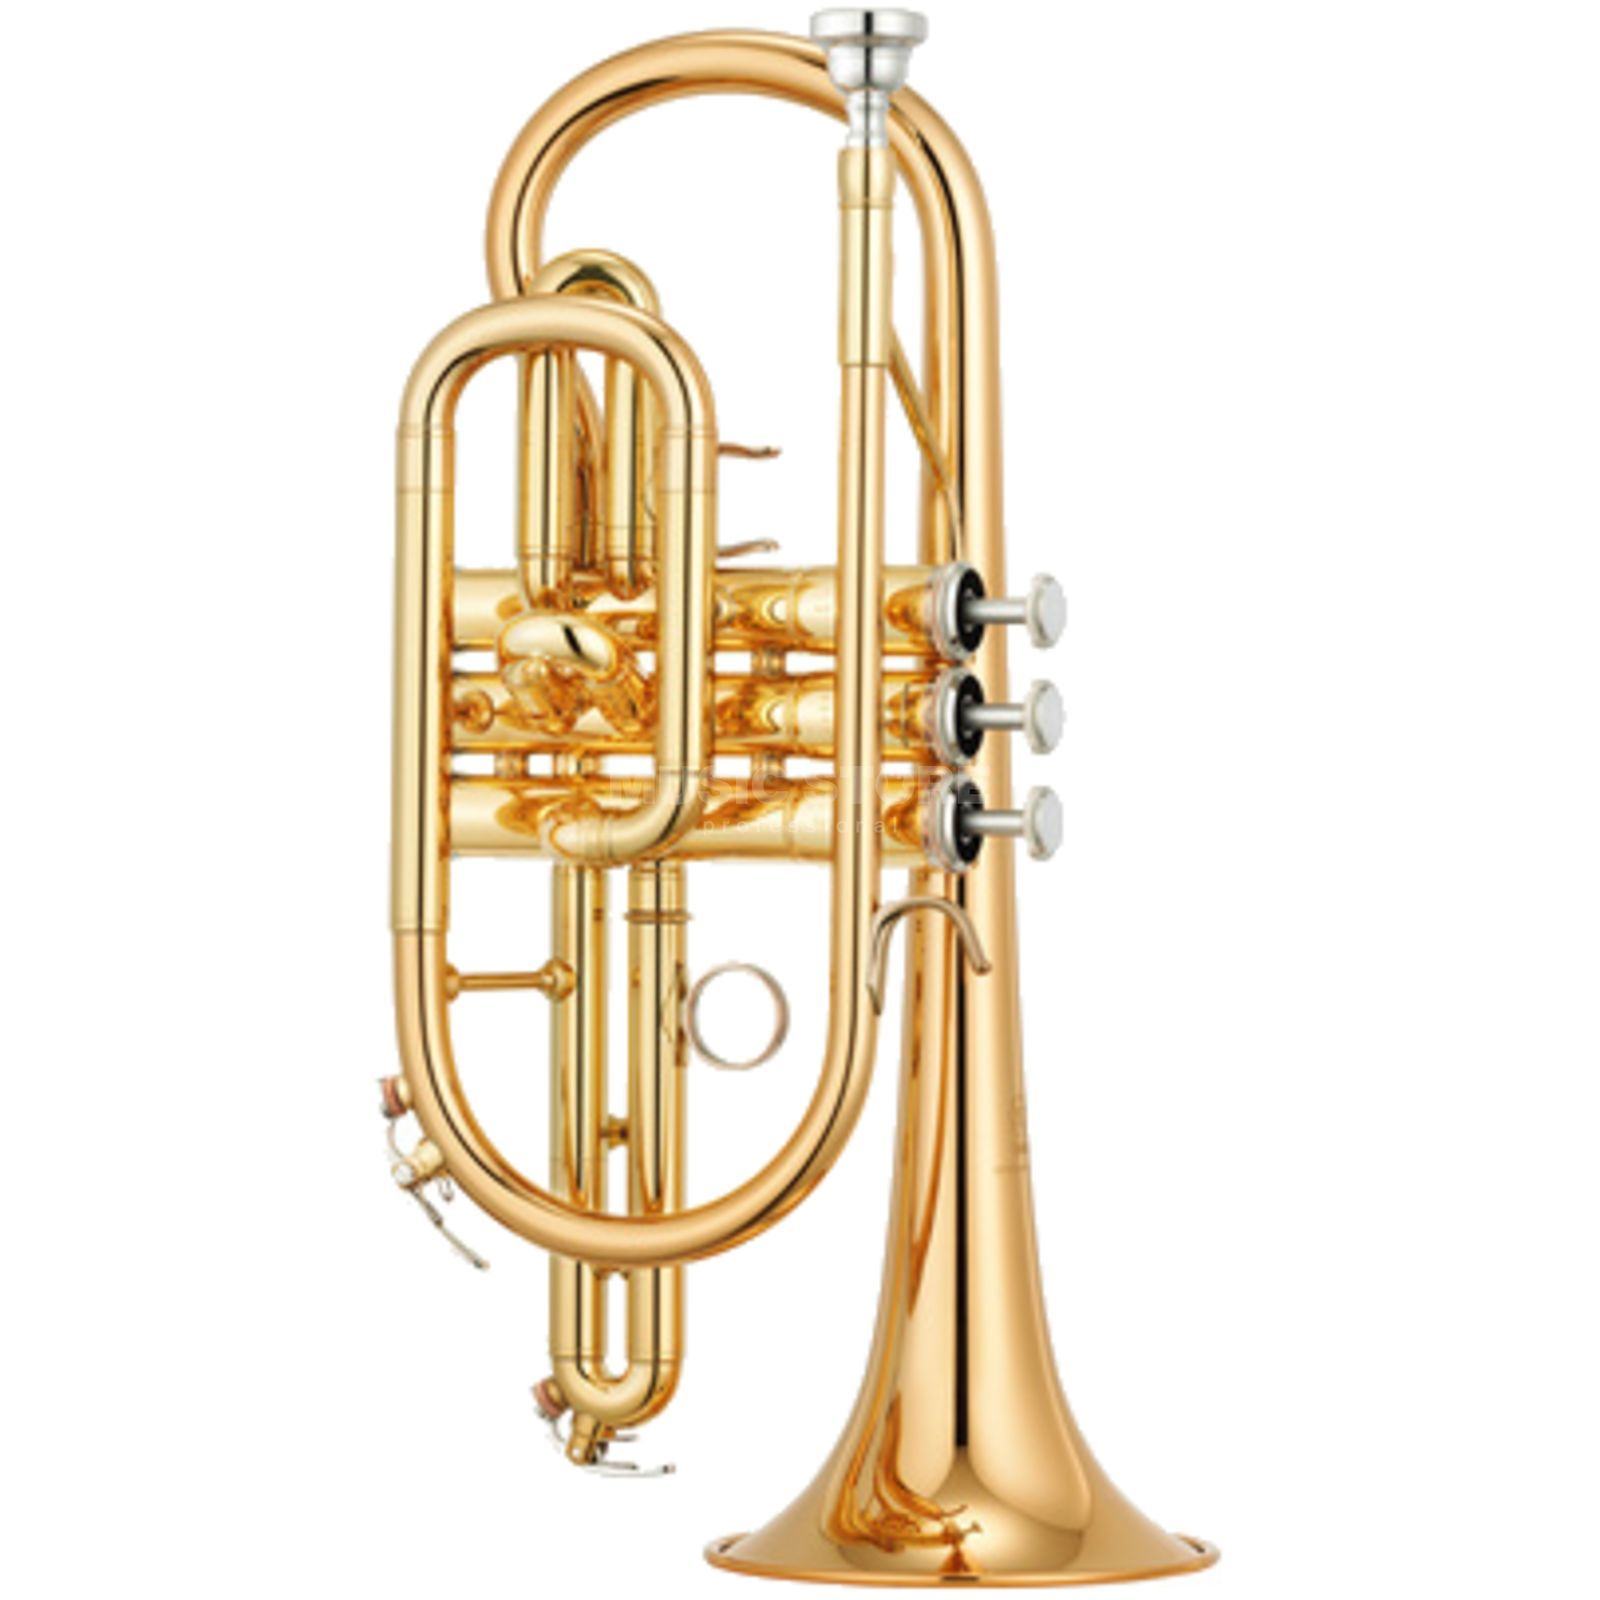 Yamaha YCR-4330G II Bb-Cornet Yellow Brass, Clear Lacquer Product Image